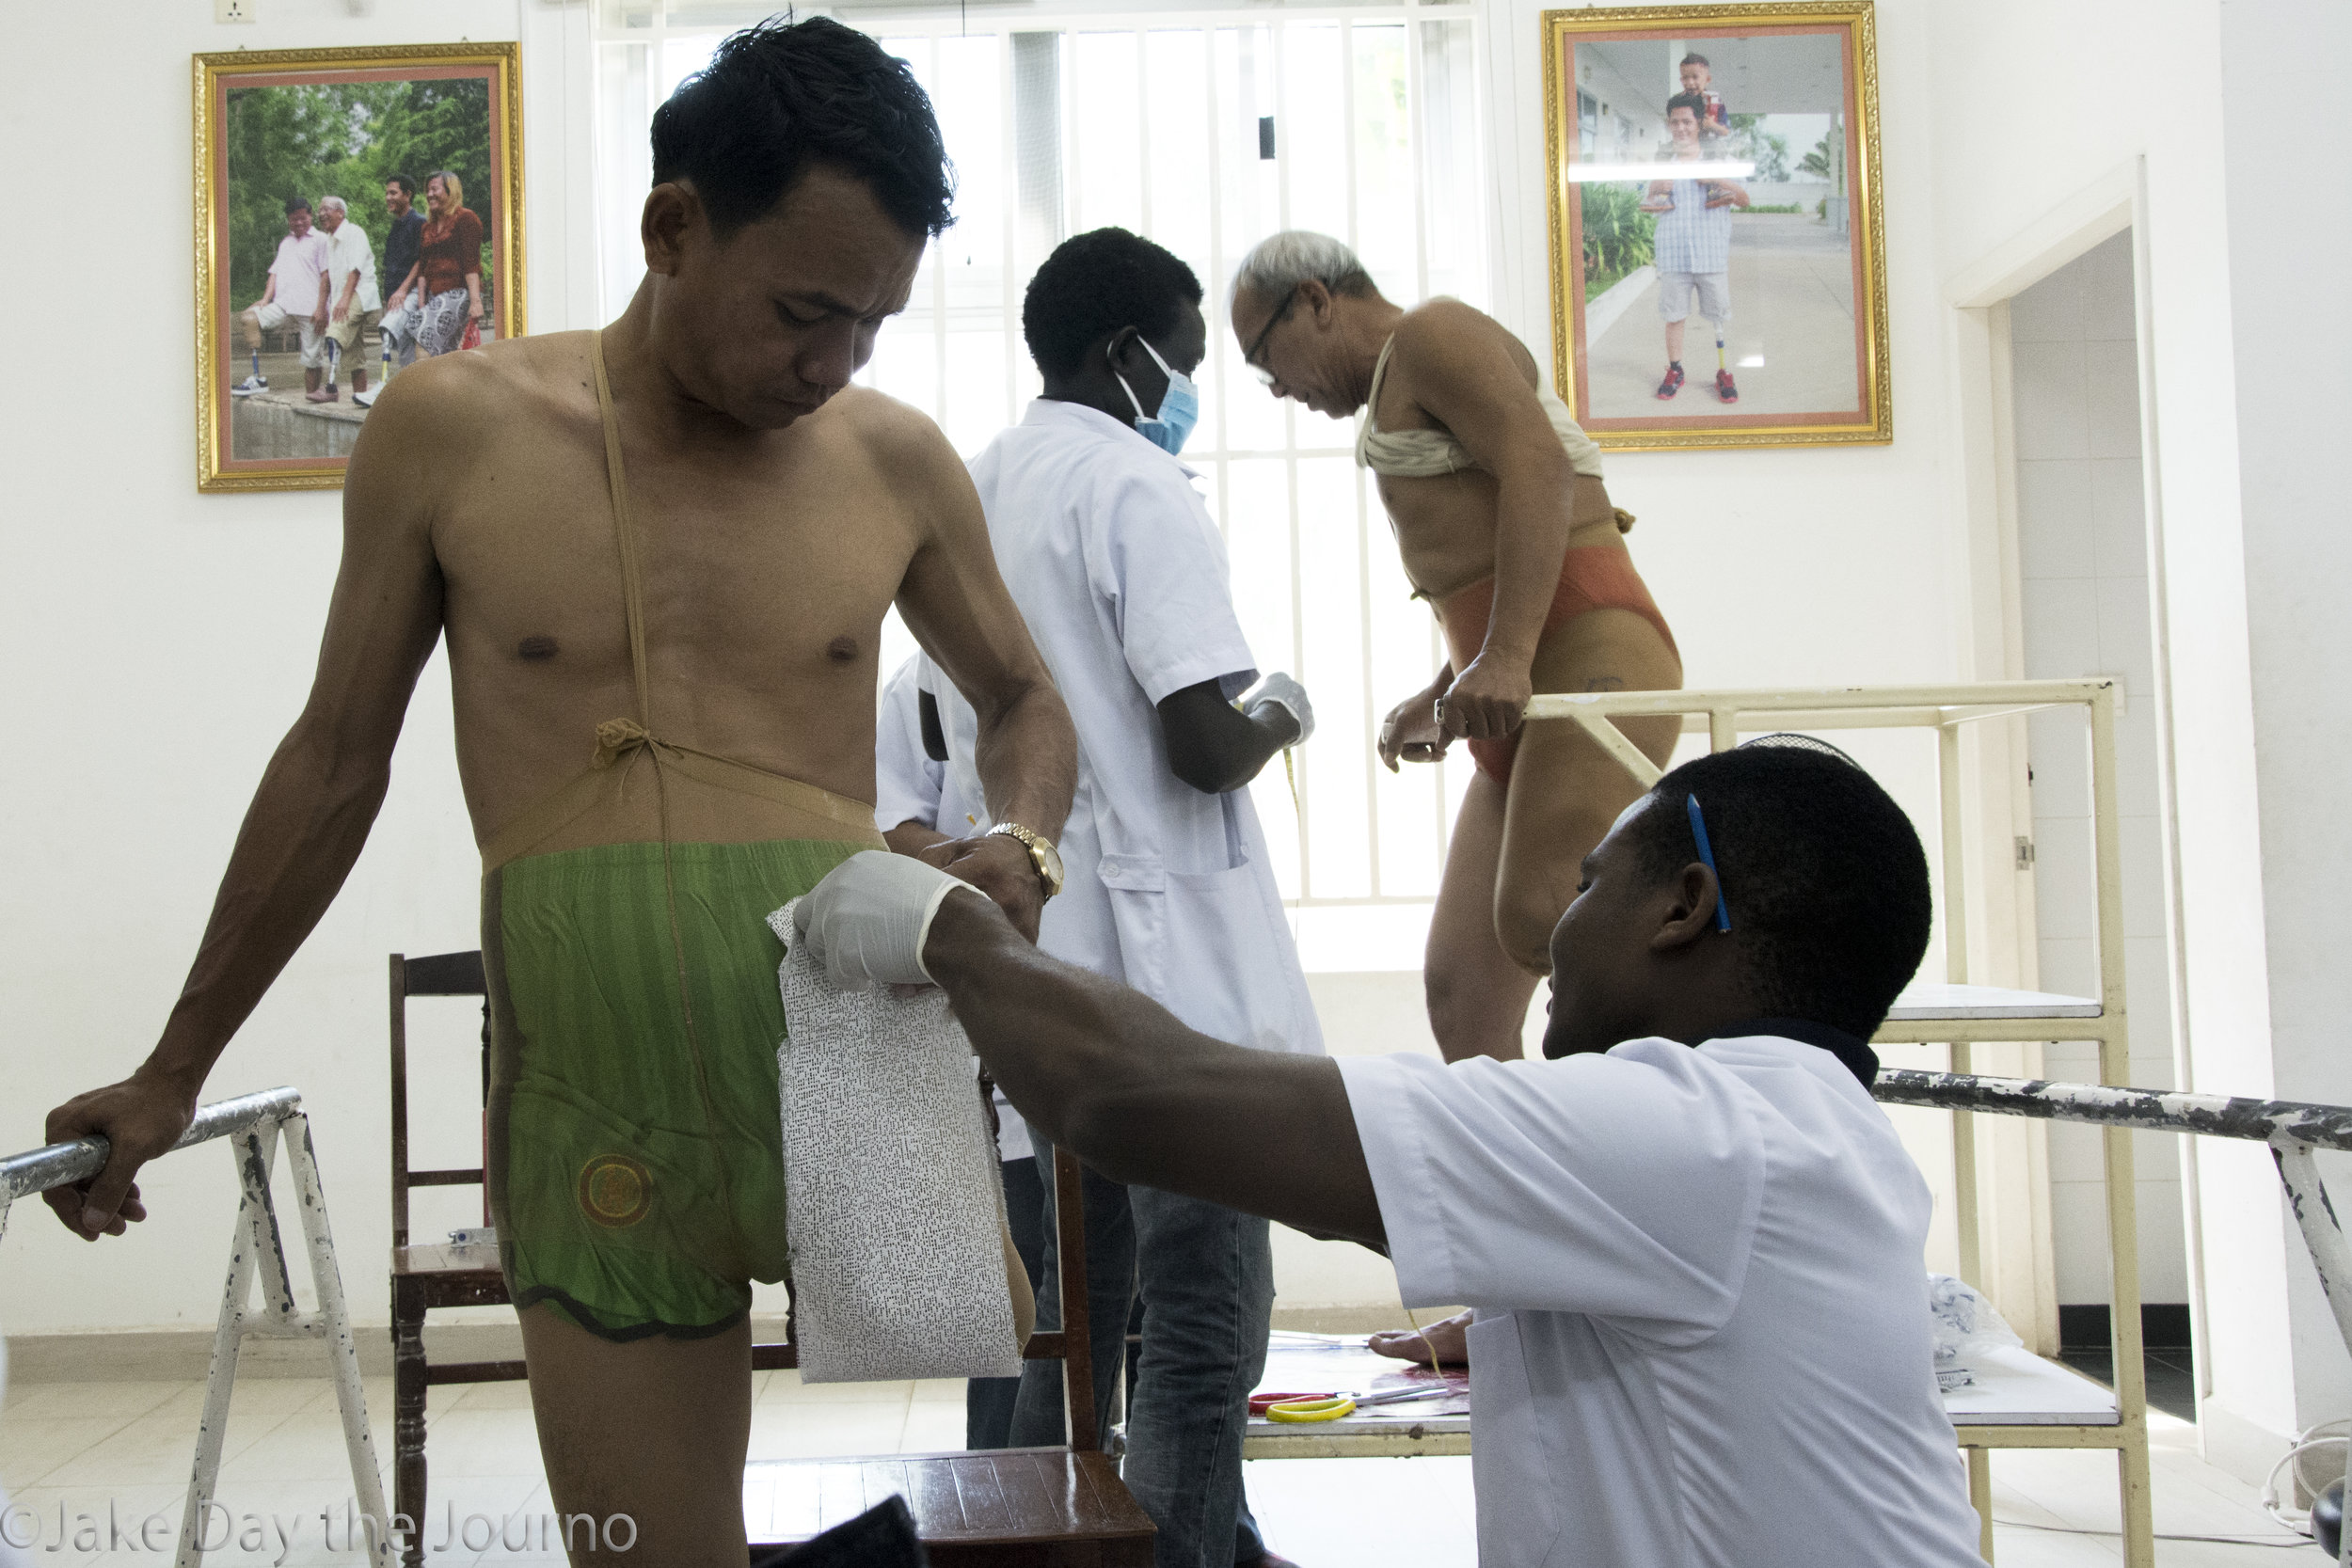 (Hem Heng, Tombura Joseph Kenyi, Chim Samang, Samuel Mkomera) Two second year students practice plastering on two local amputees on examination day at the Exceed Cambodian School of Prosthetics and Orthotics on 16/01/18 by Jake Day.